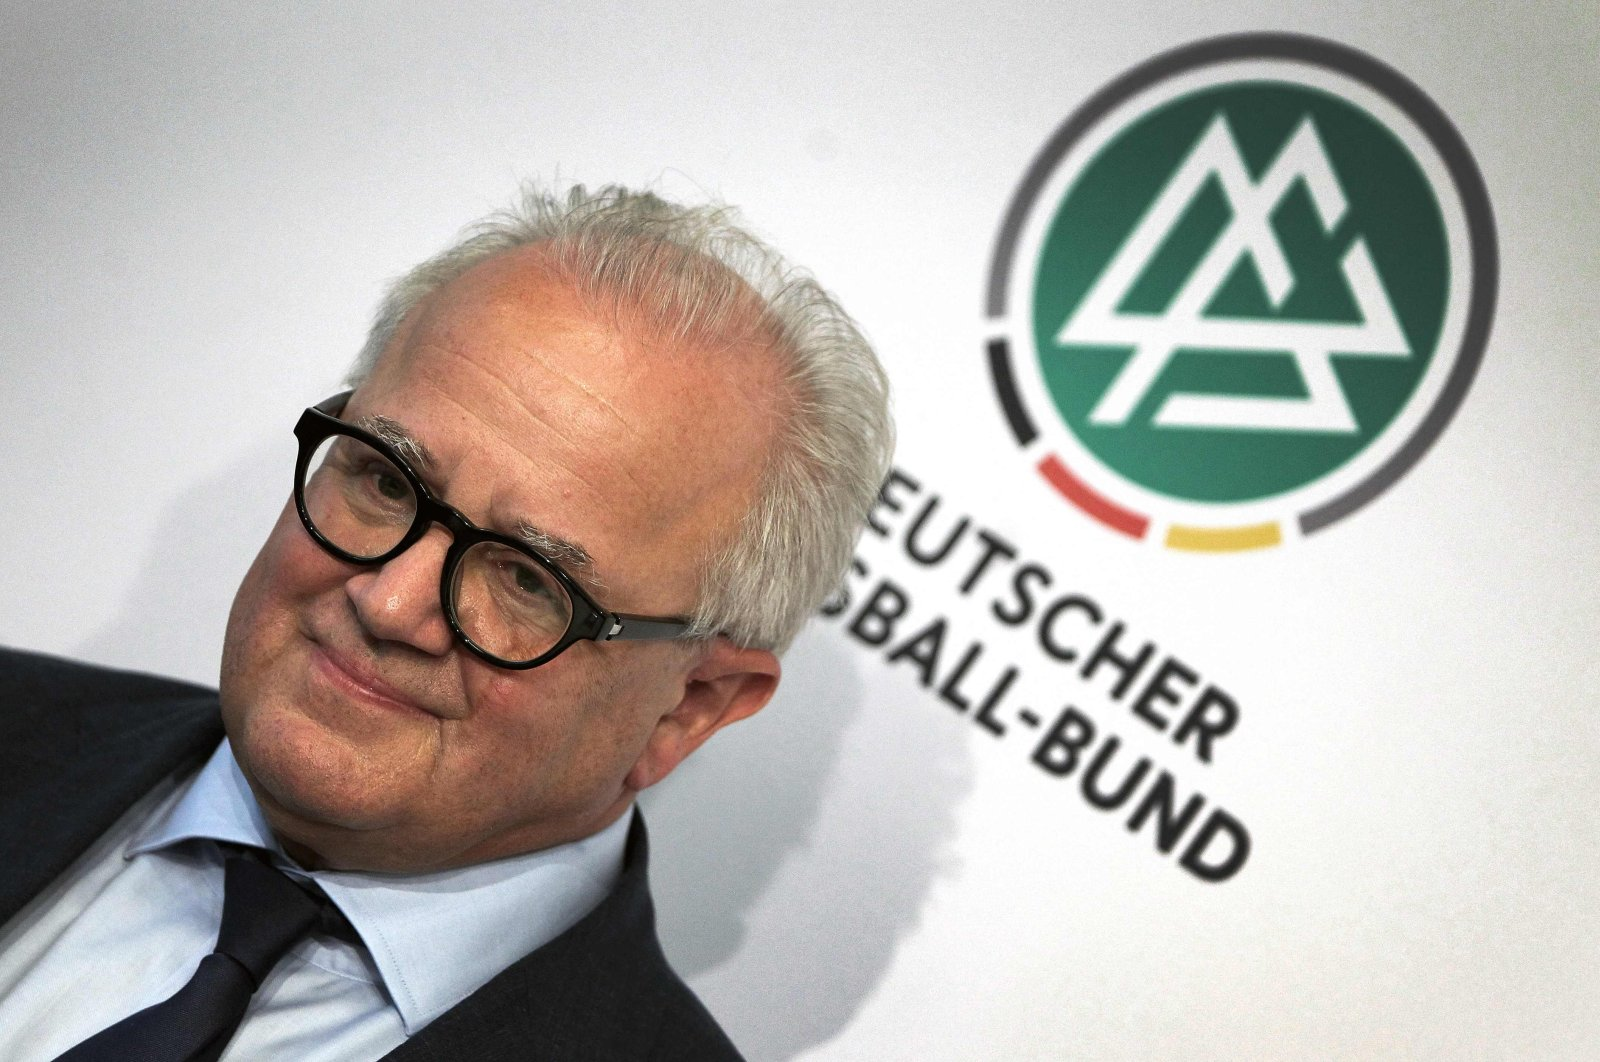 Then-president of the German football federation DFB, Fritz Keller, attends a press conference in Frankfurt am Main, Germany, Sept. 27, 2019. (AFP)